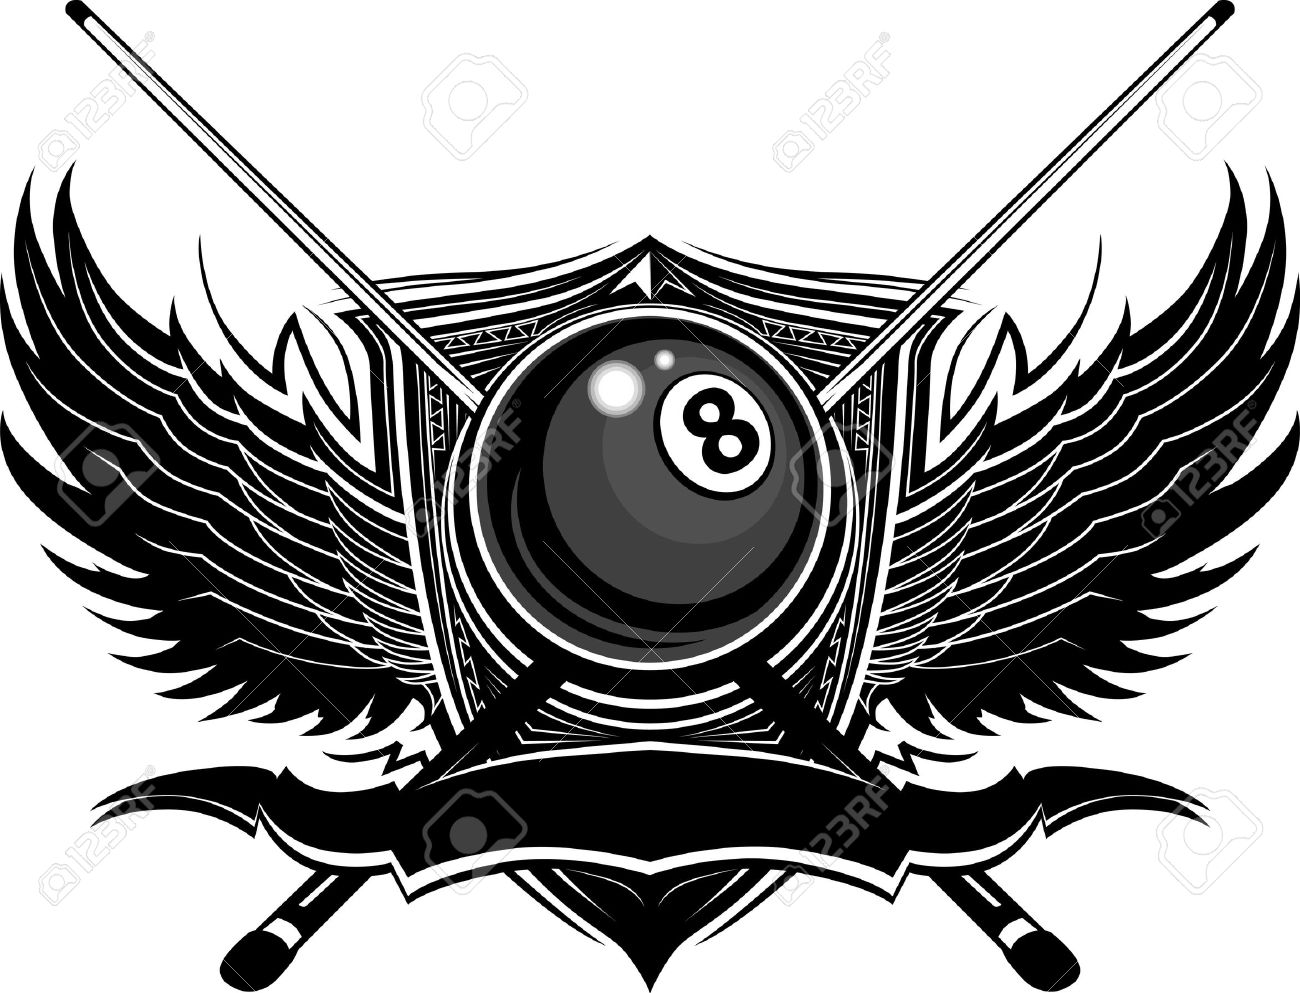 Billiards Eight Ball with Ornamental Wings Vector Template Stock Vector - 12483925